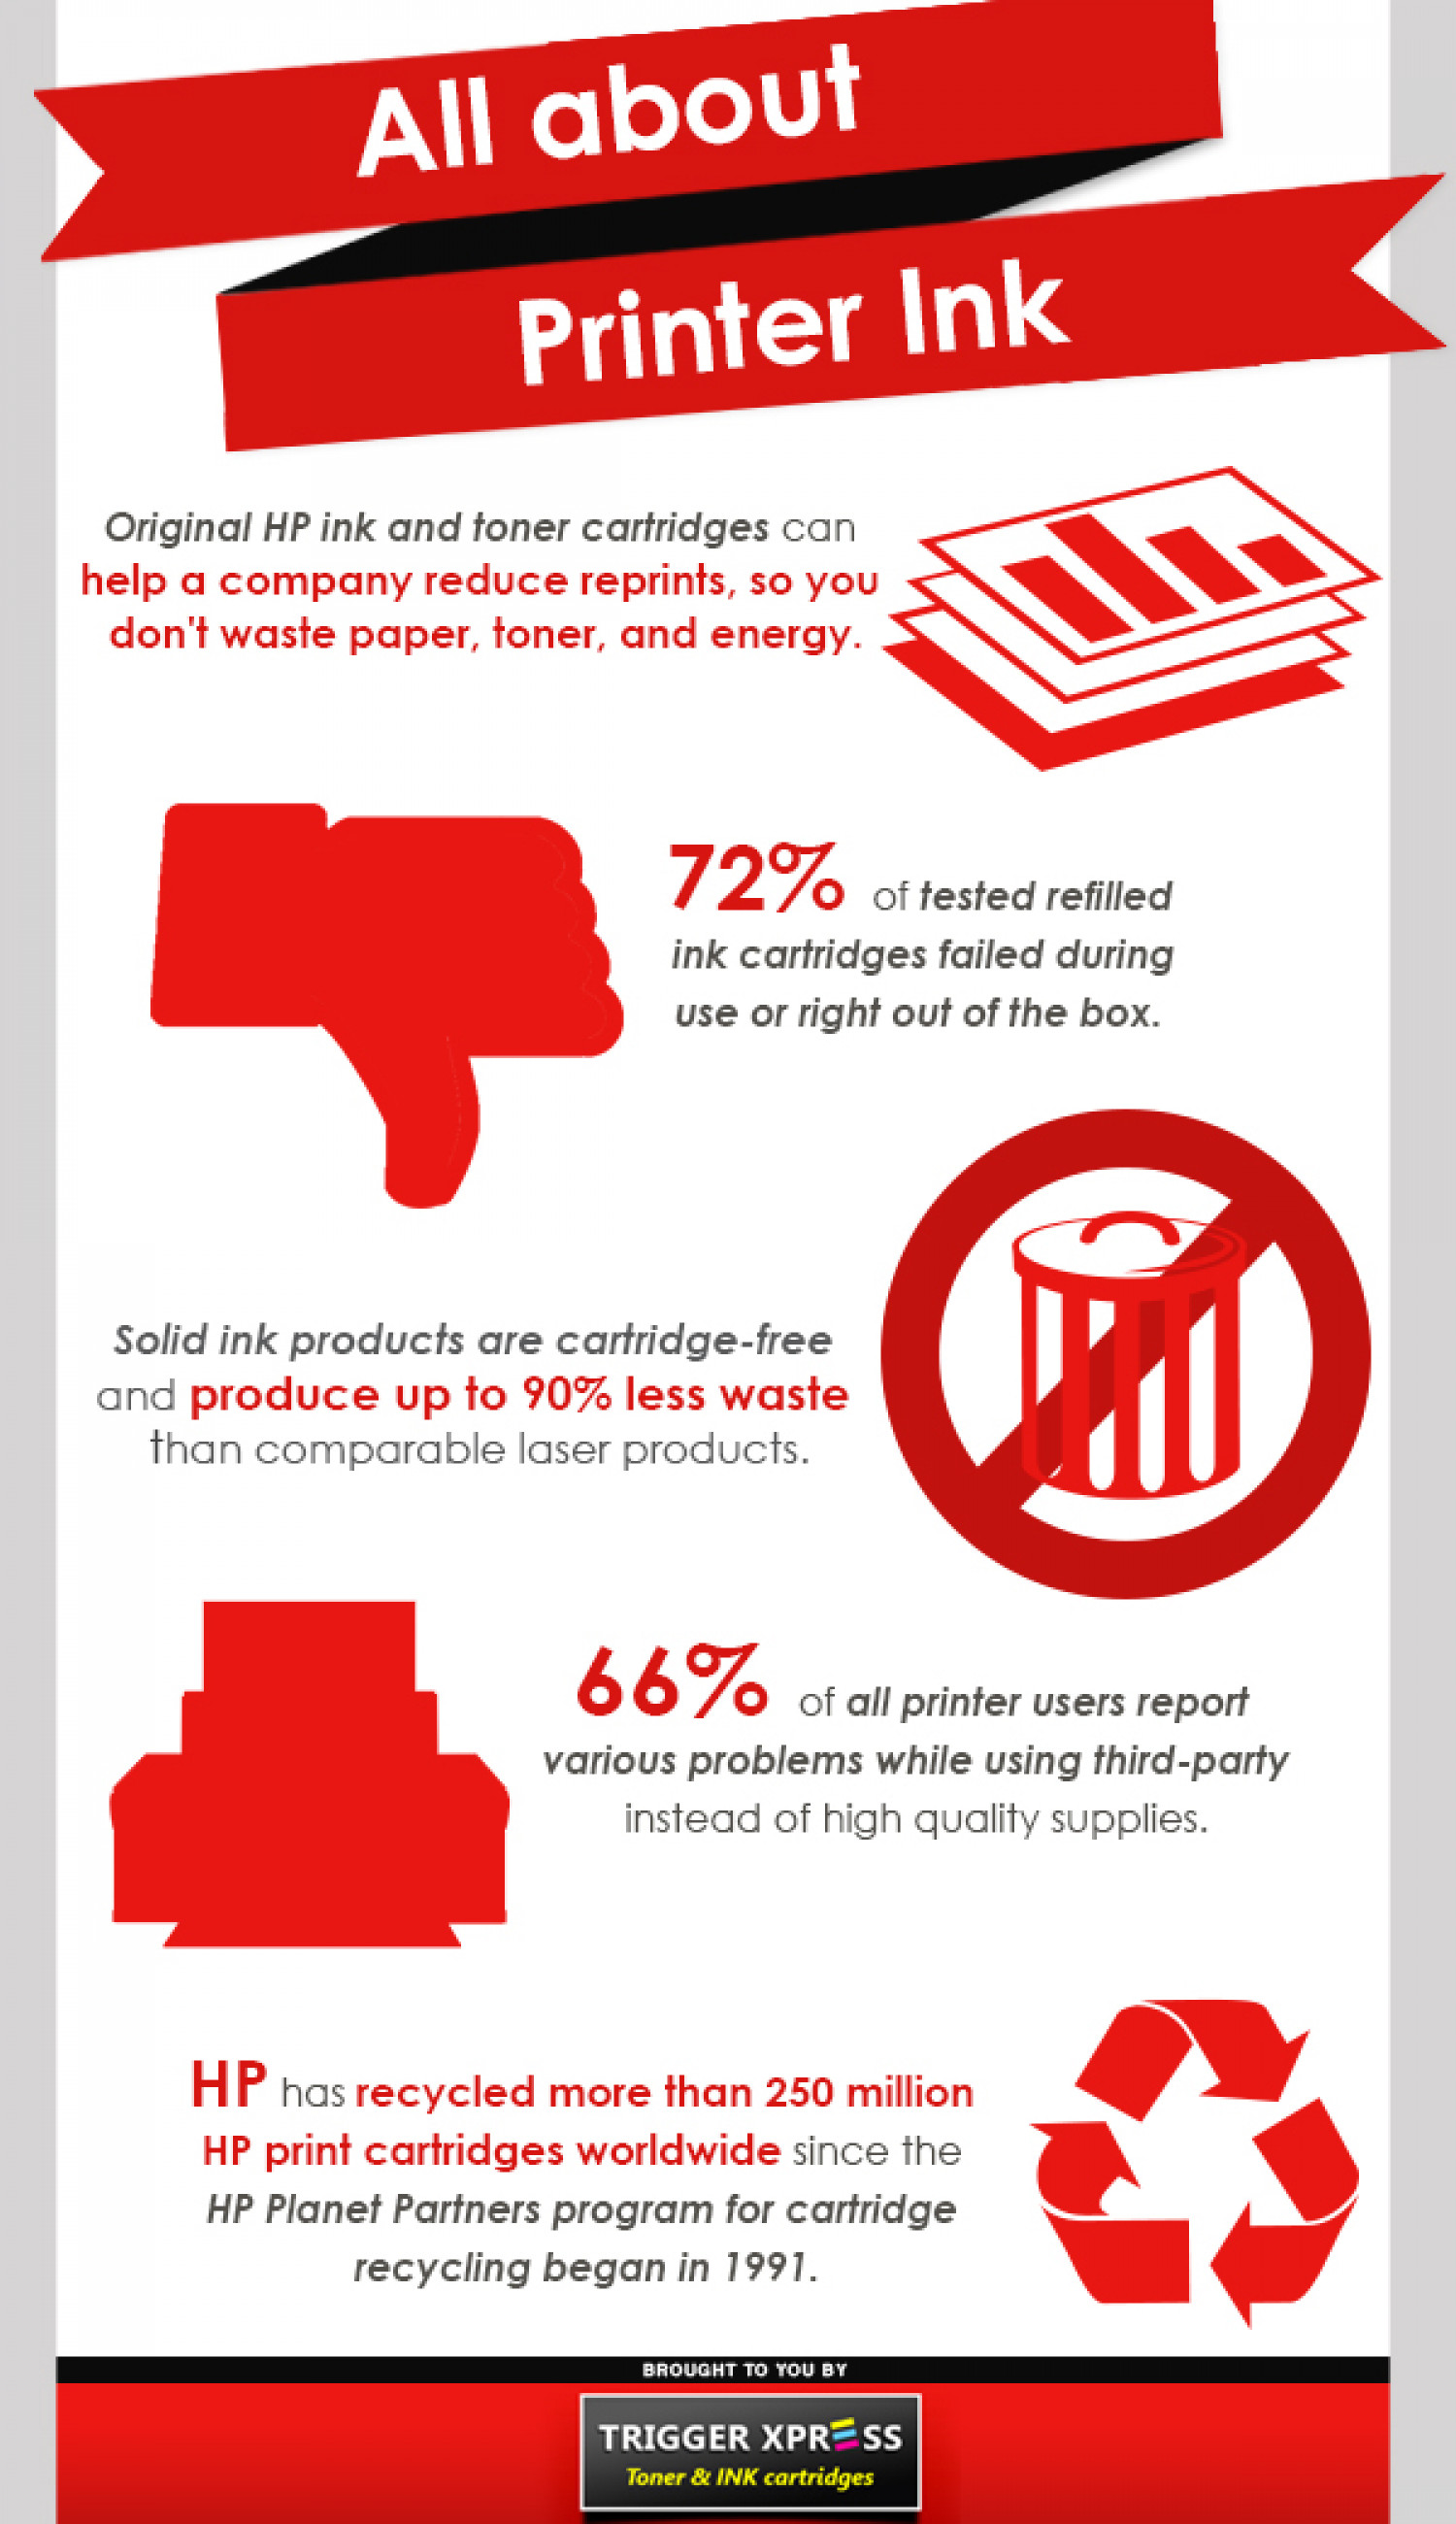 All About Printer Ink Infographic